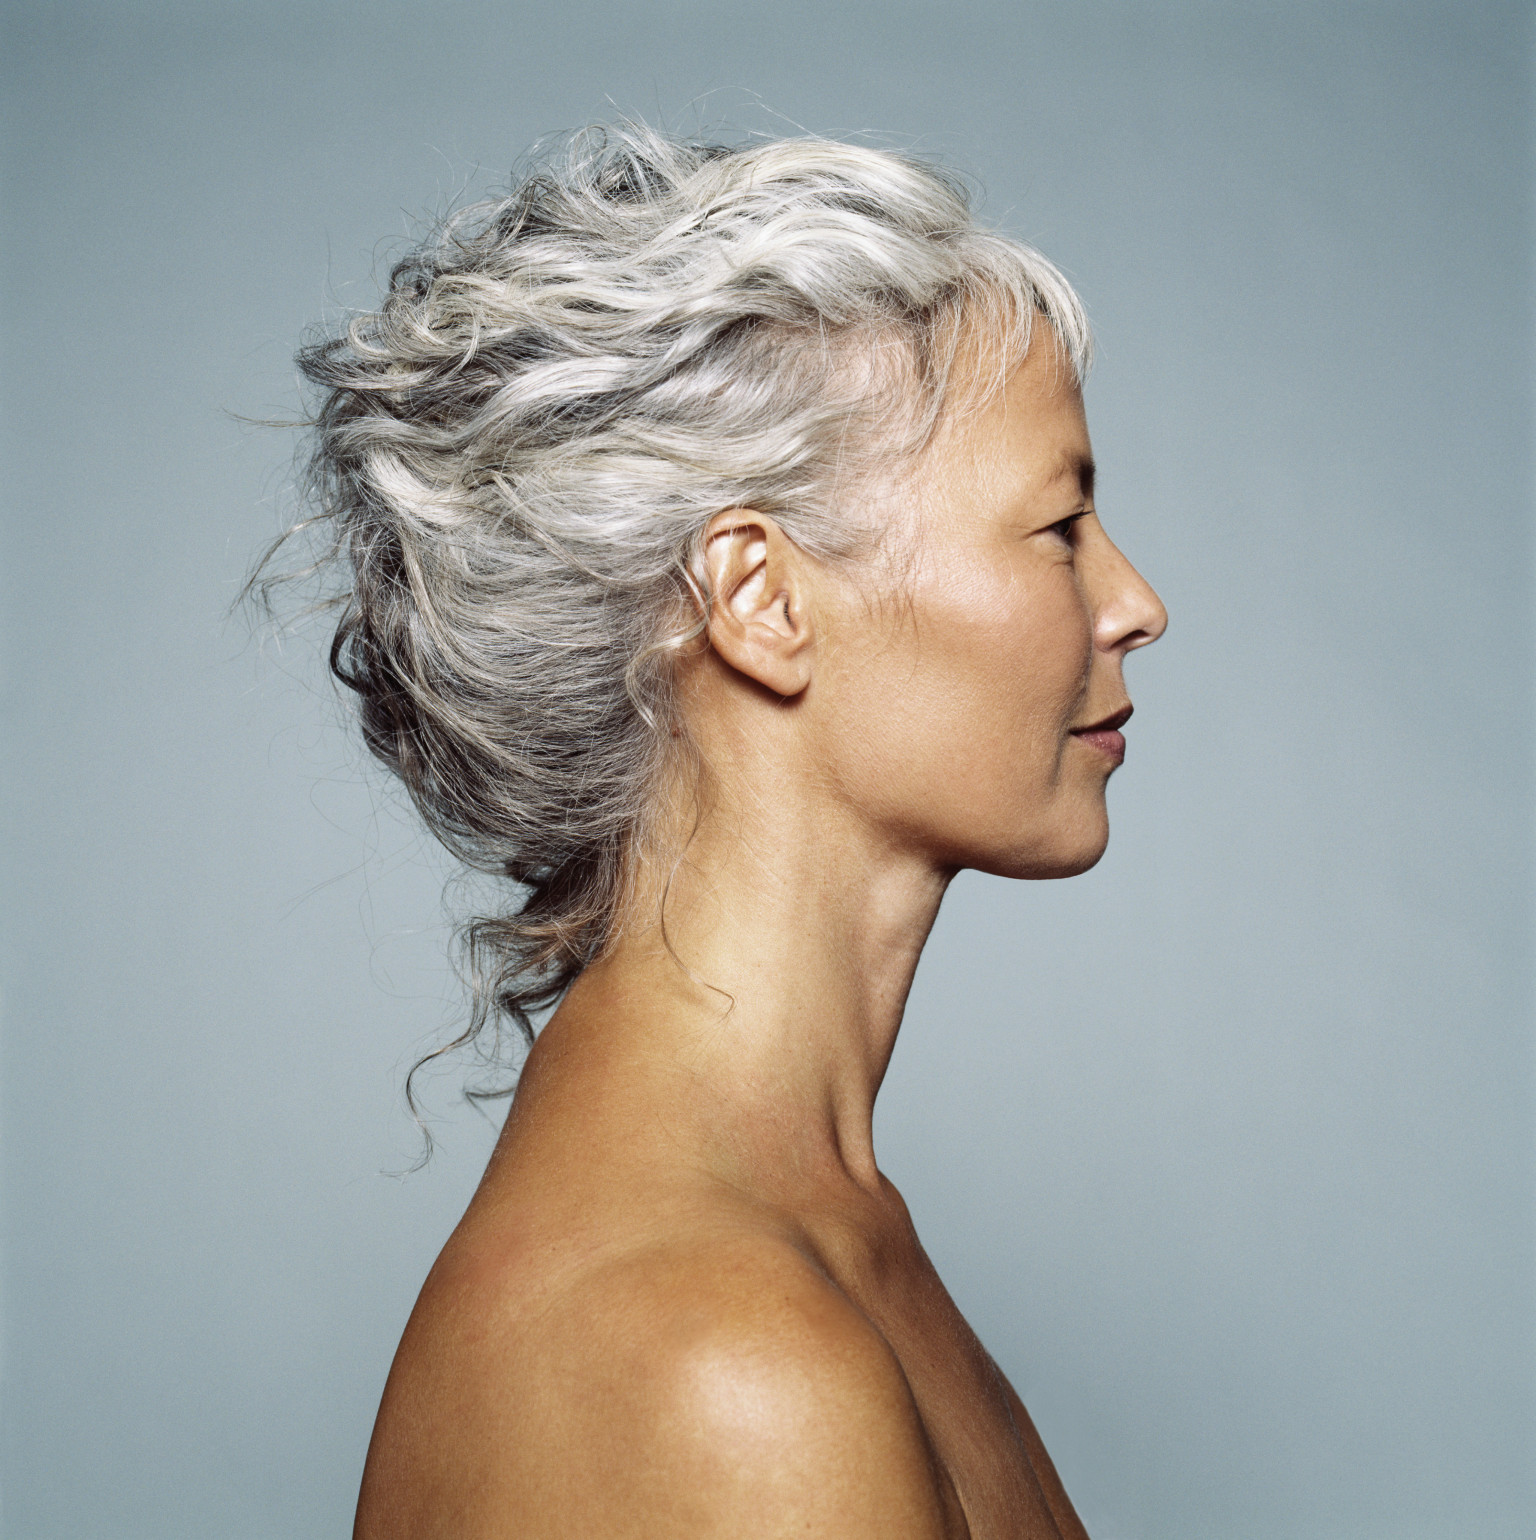 30 Stylish Gray Hair Styles For Short and Long Hair